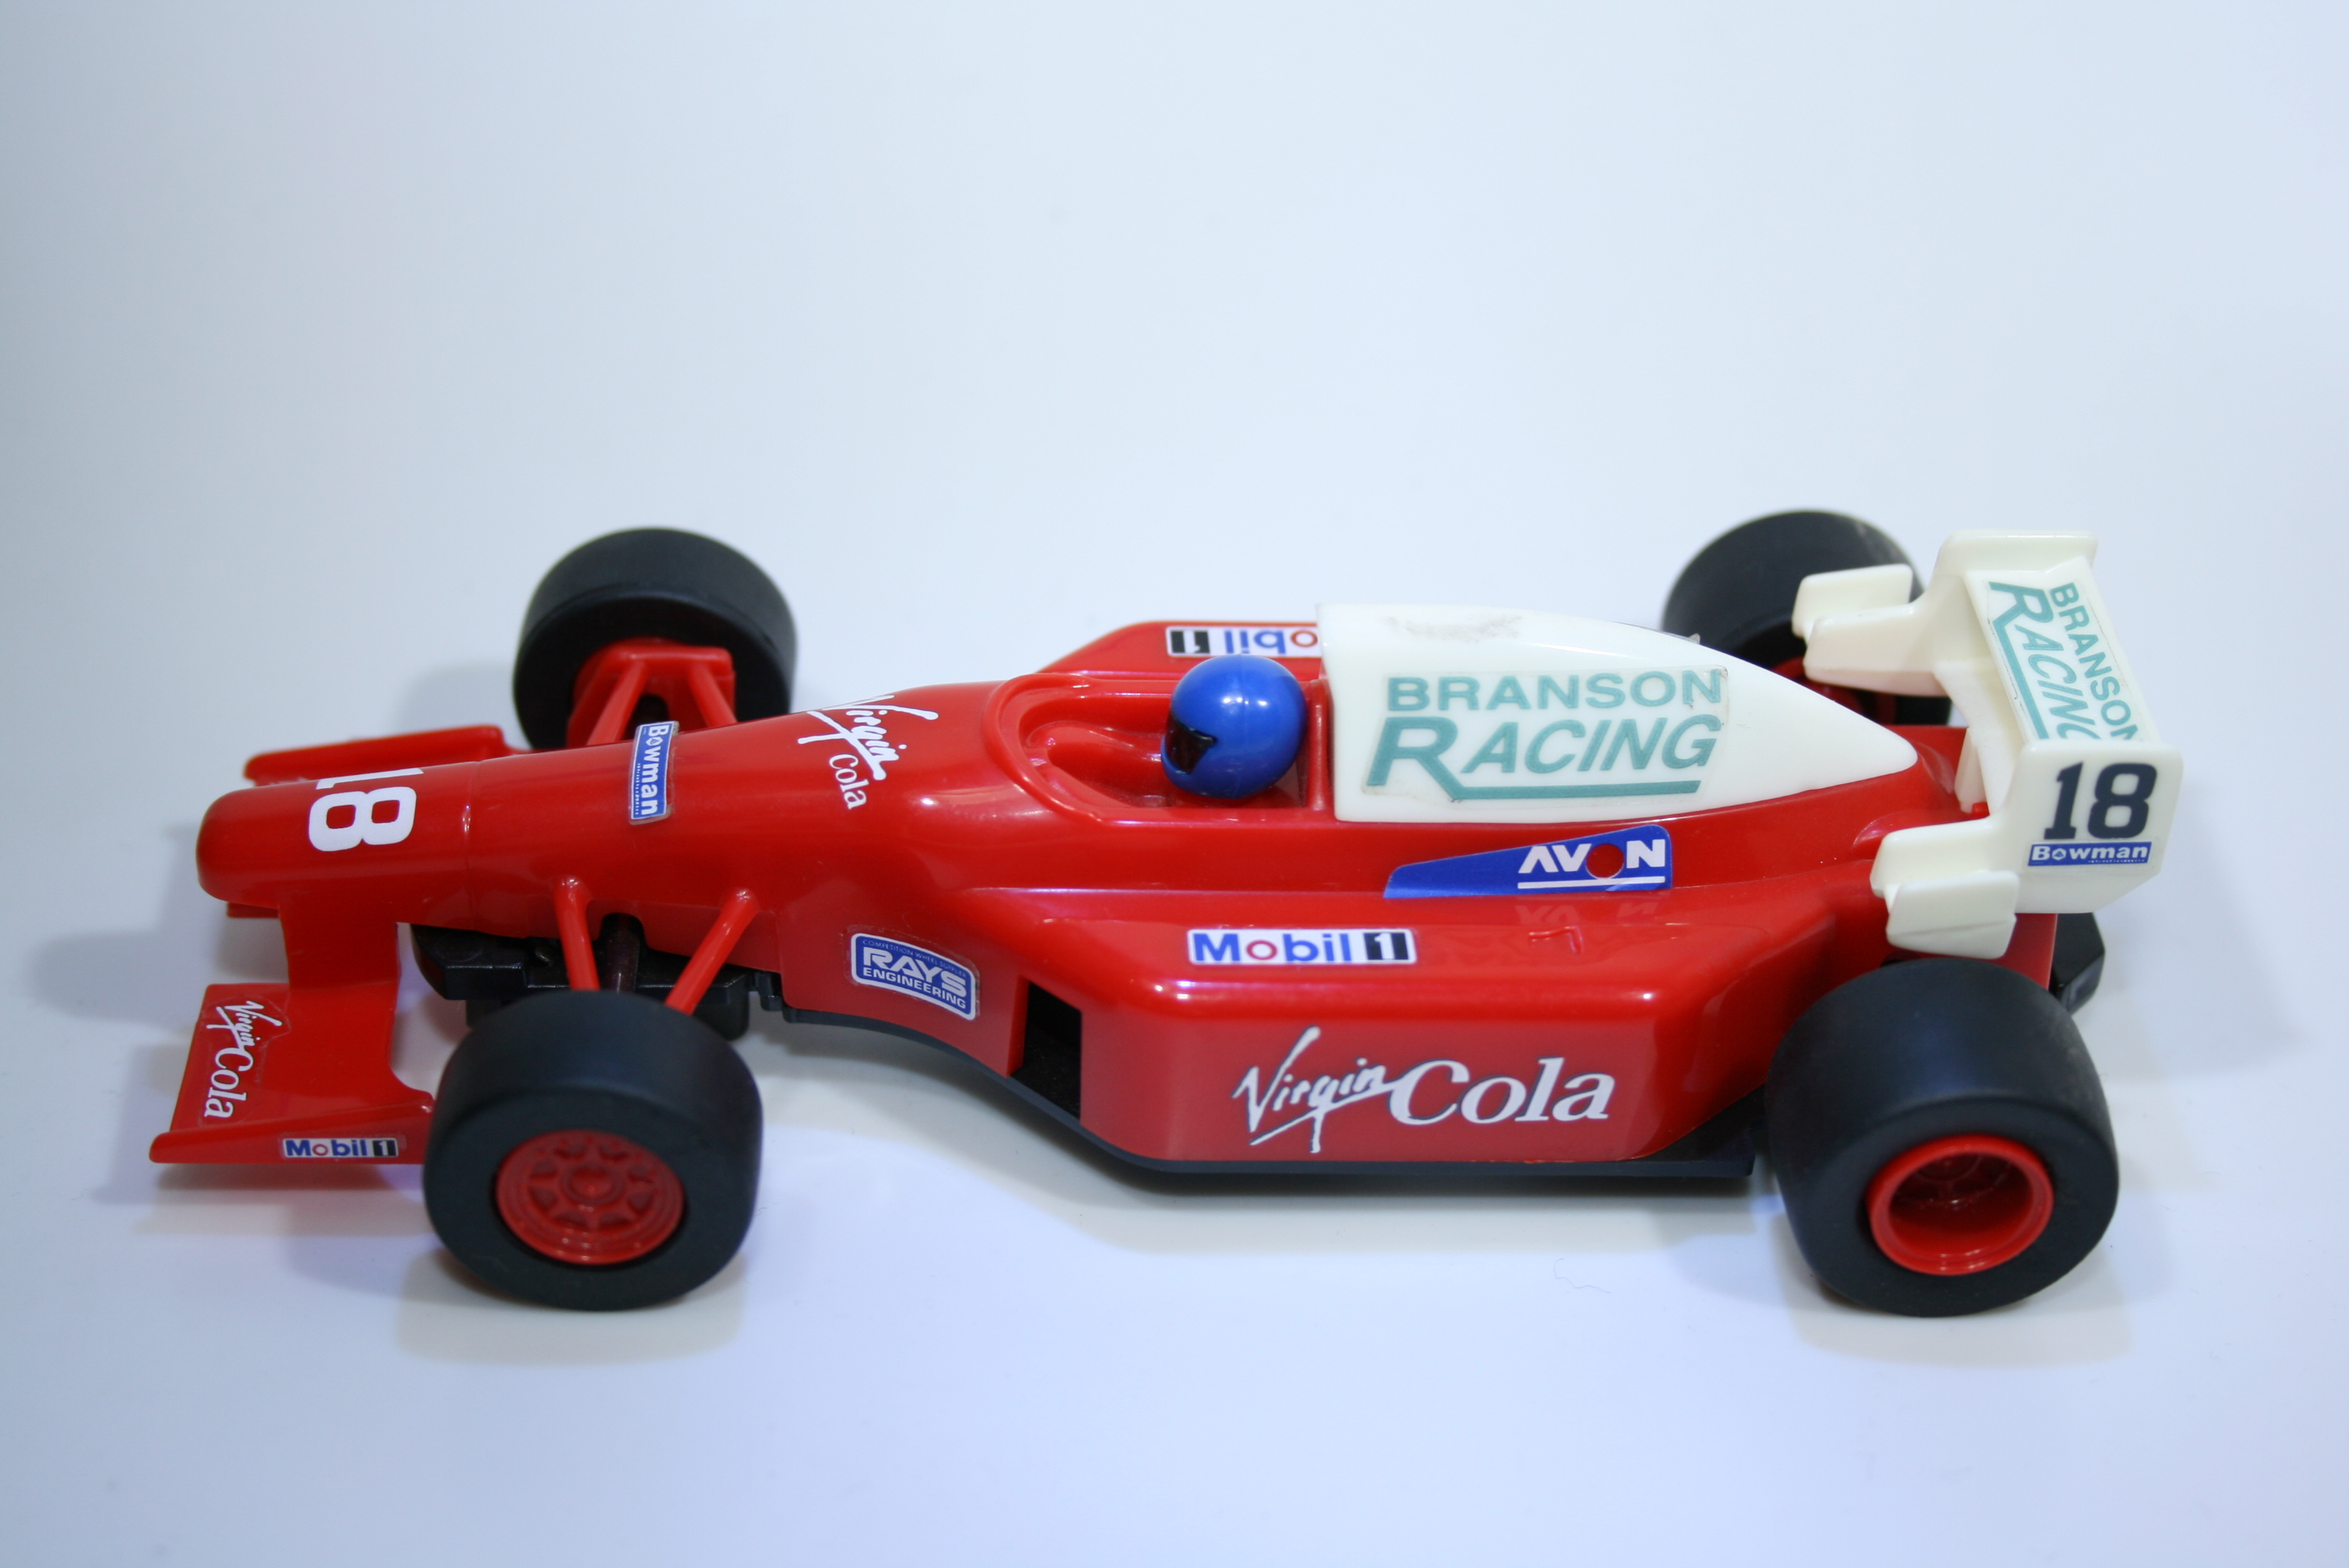 218 Scalextric Team Car Virgin Cola C2016 1998-99